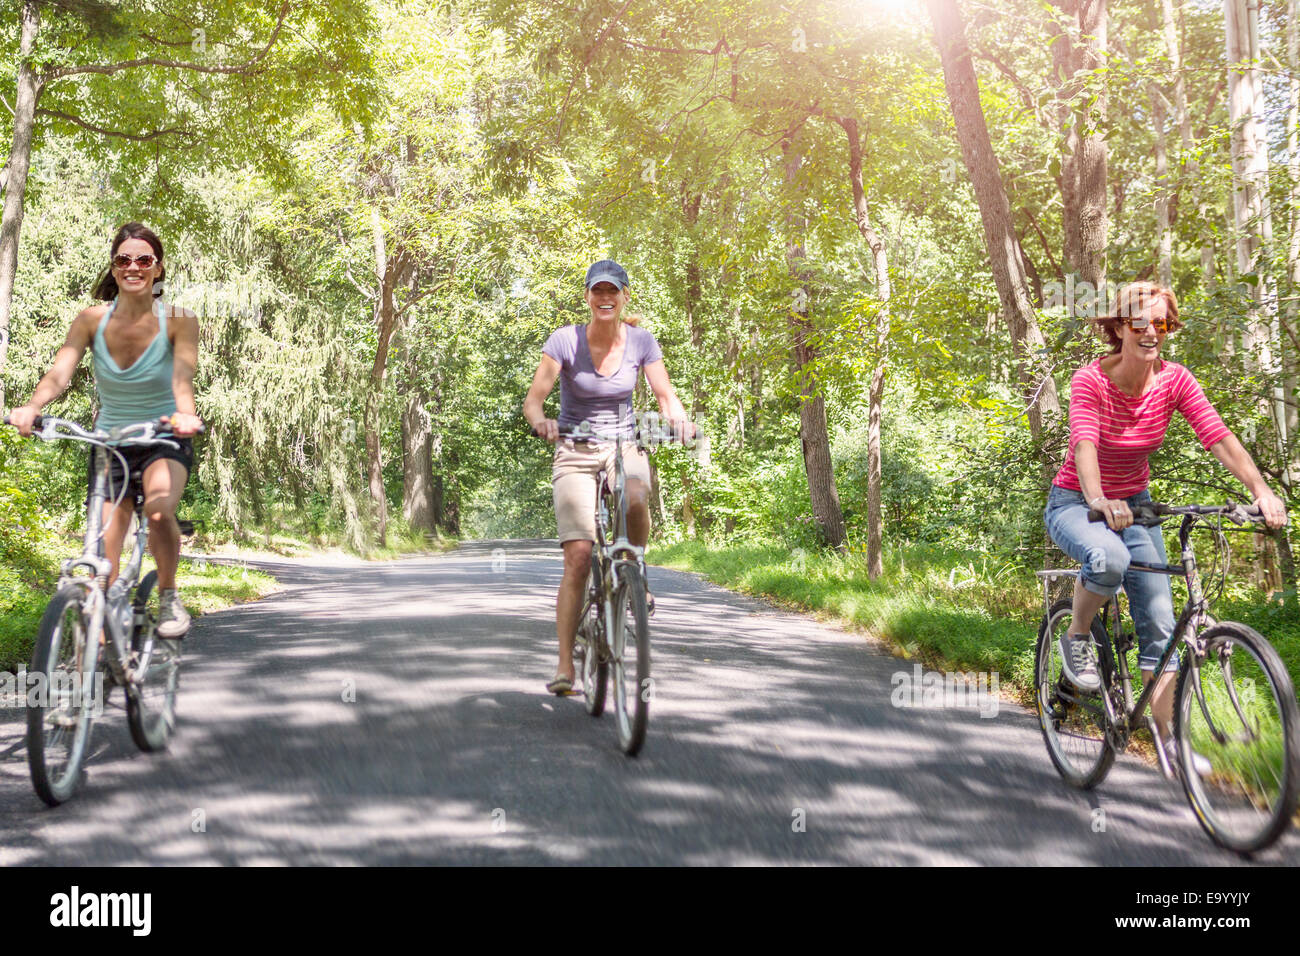 Three mature woman riding bicycles along country road - Stock Image